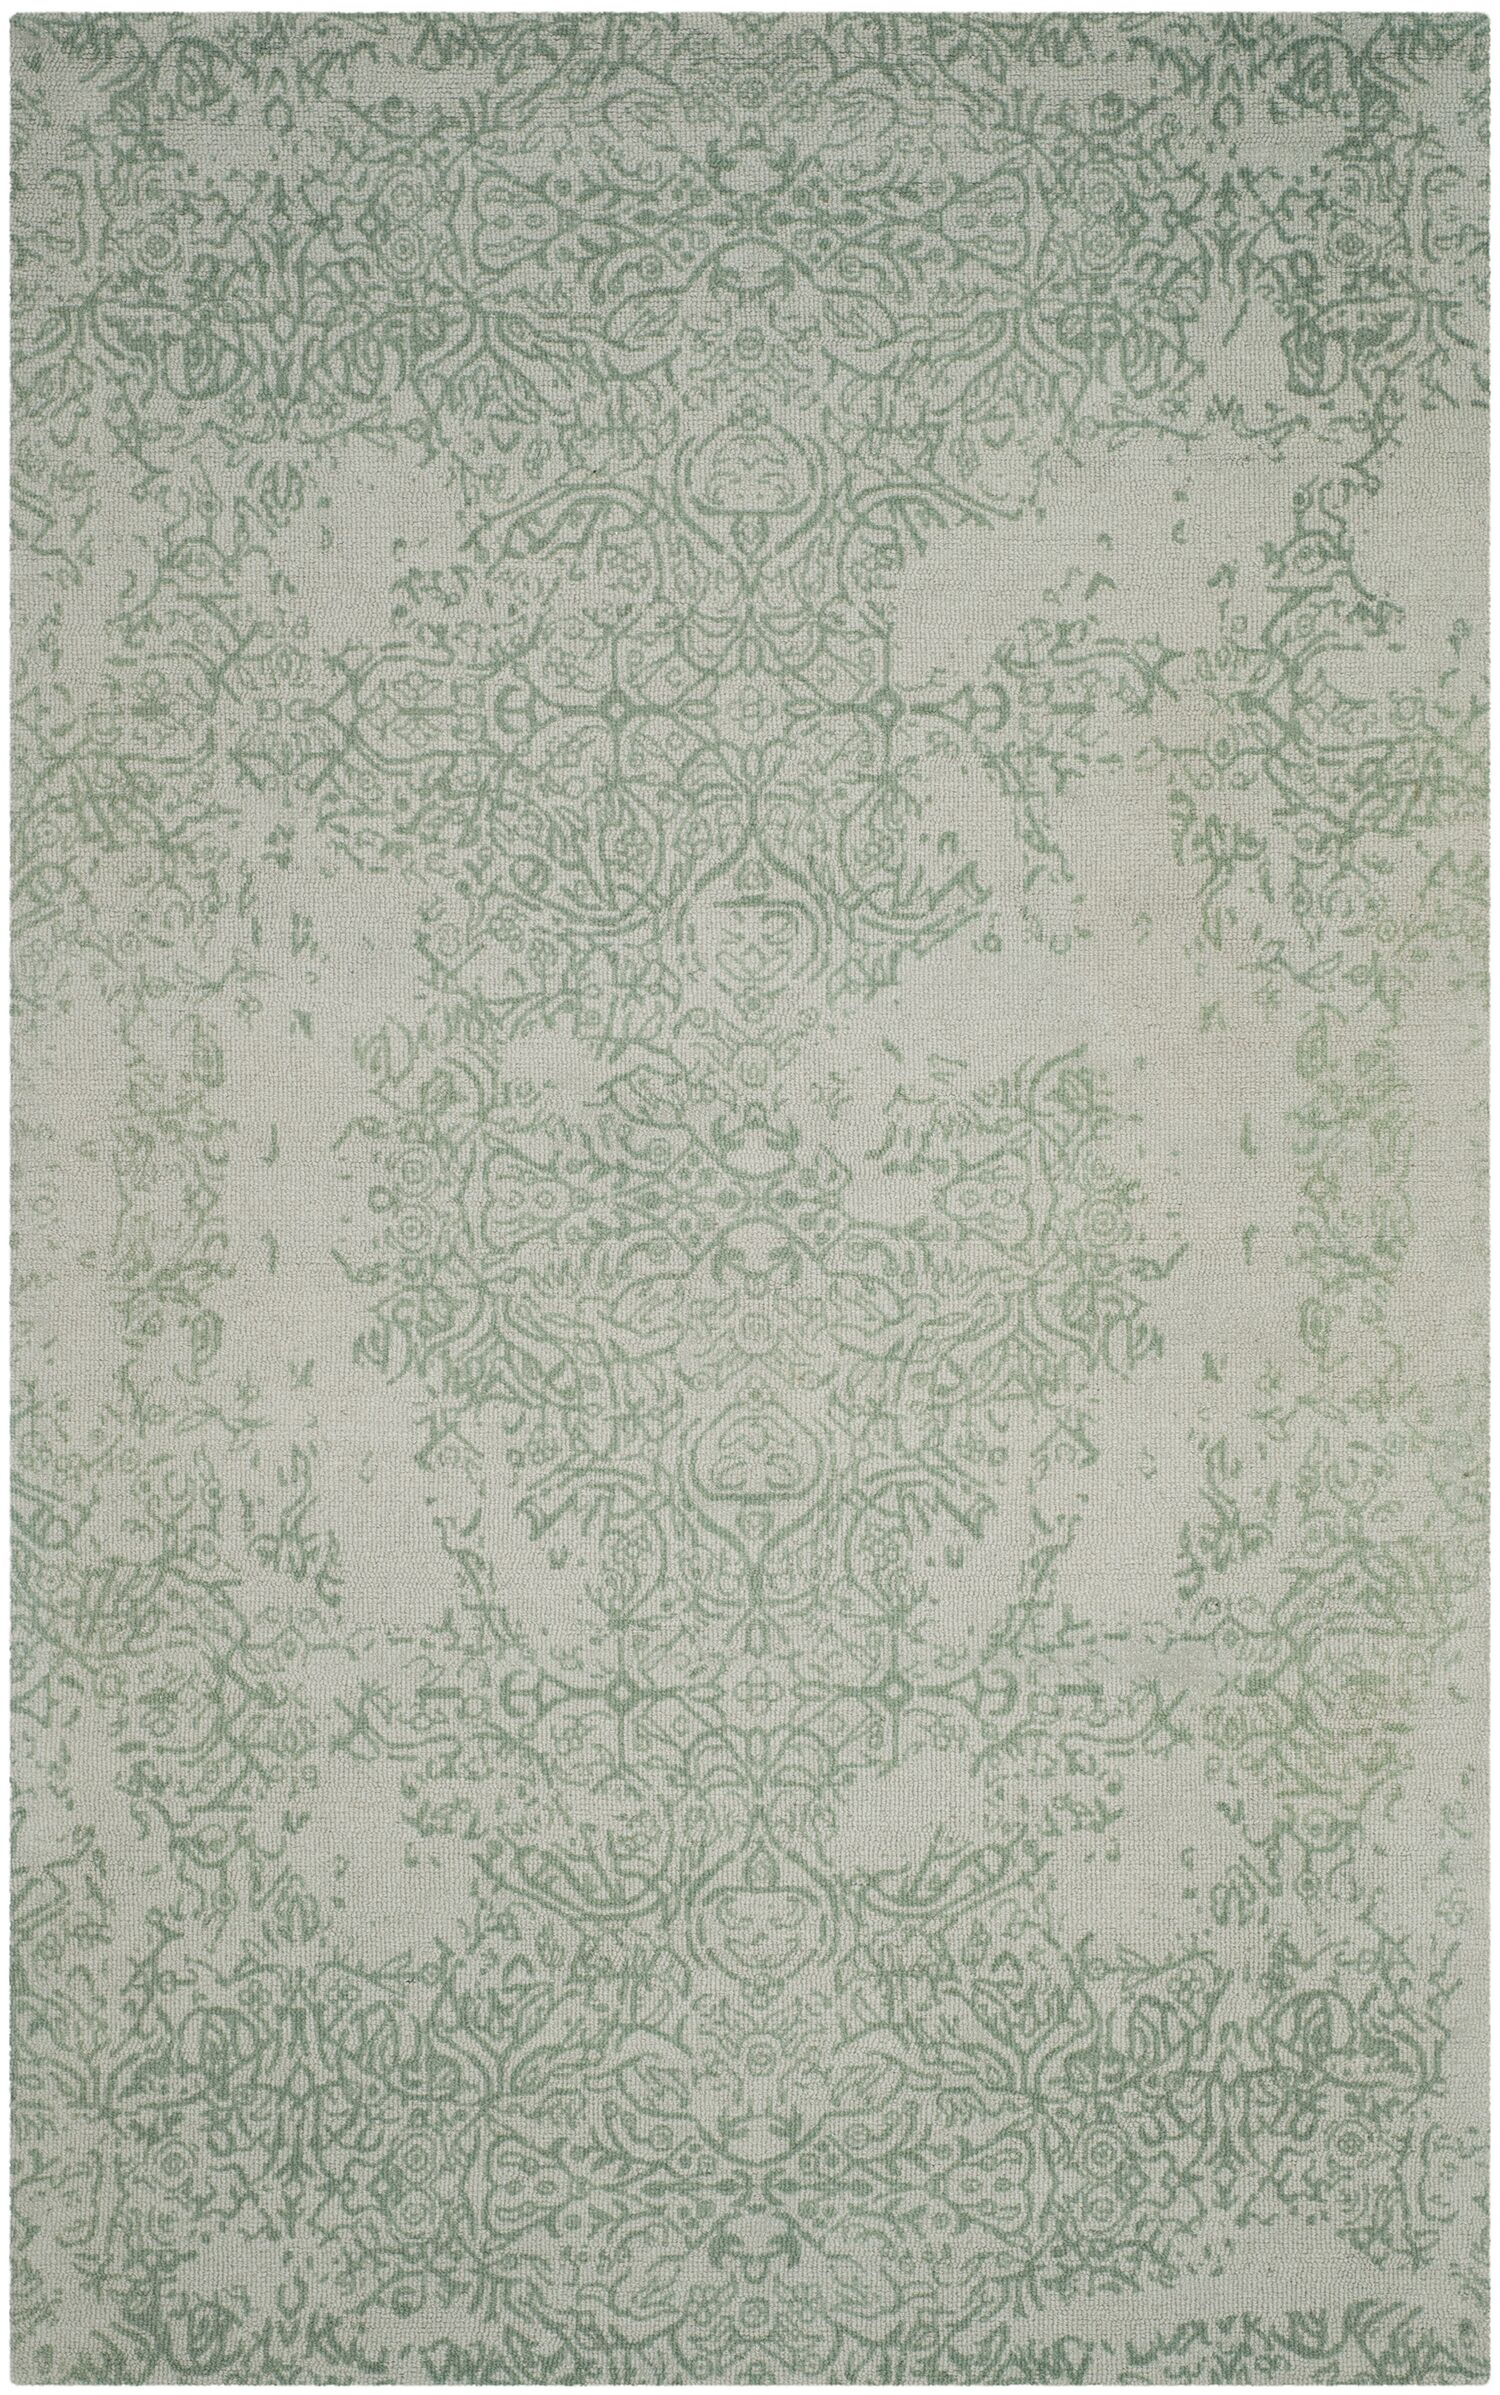 Ellicottville Hand-Tufted Gray/Turquoise Area Rug Rug Size: Rectangle 5' x 8'